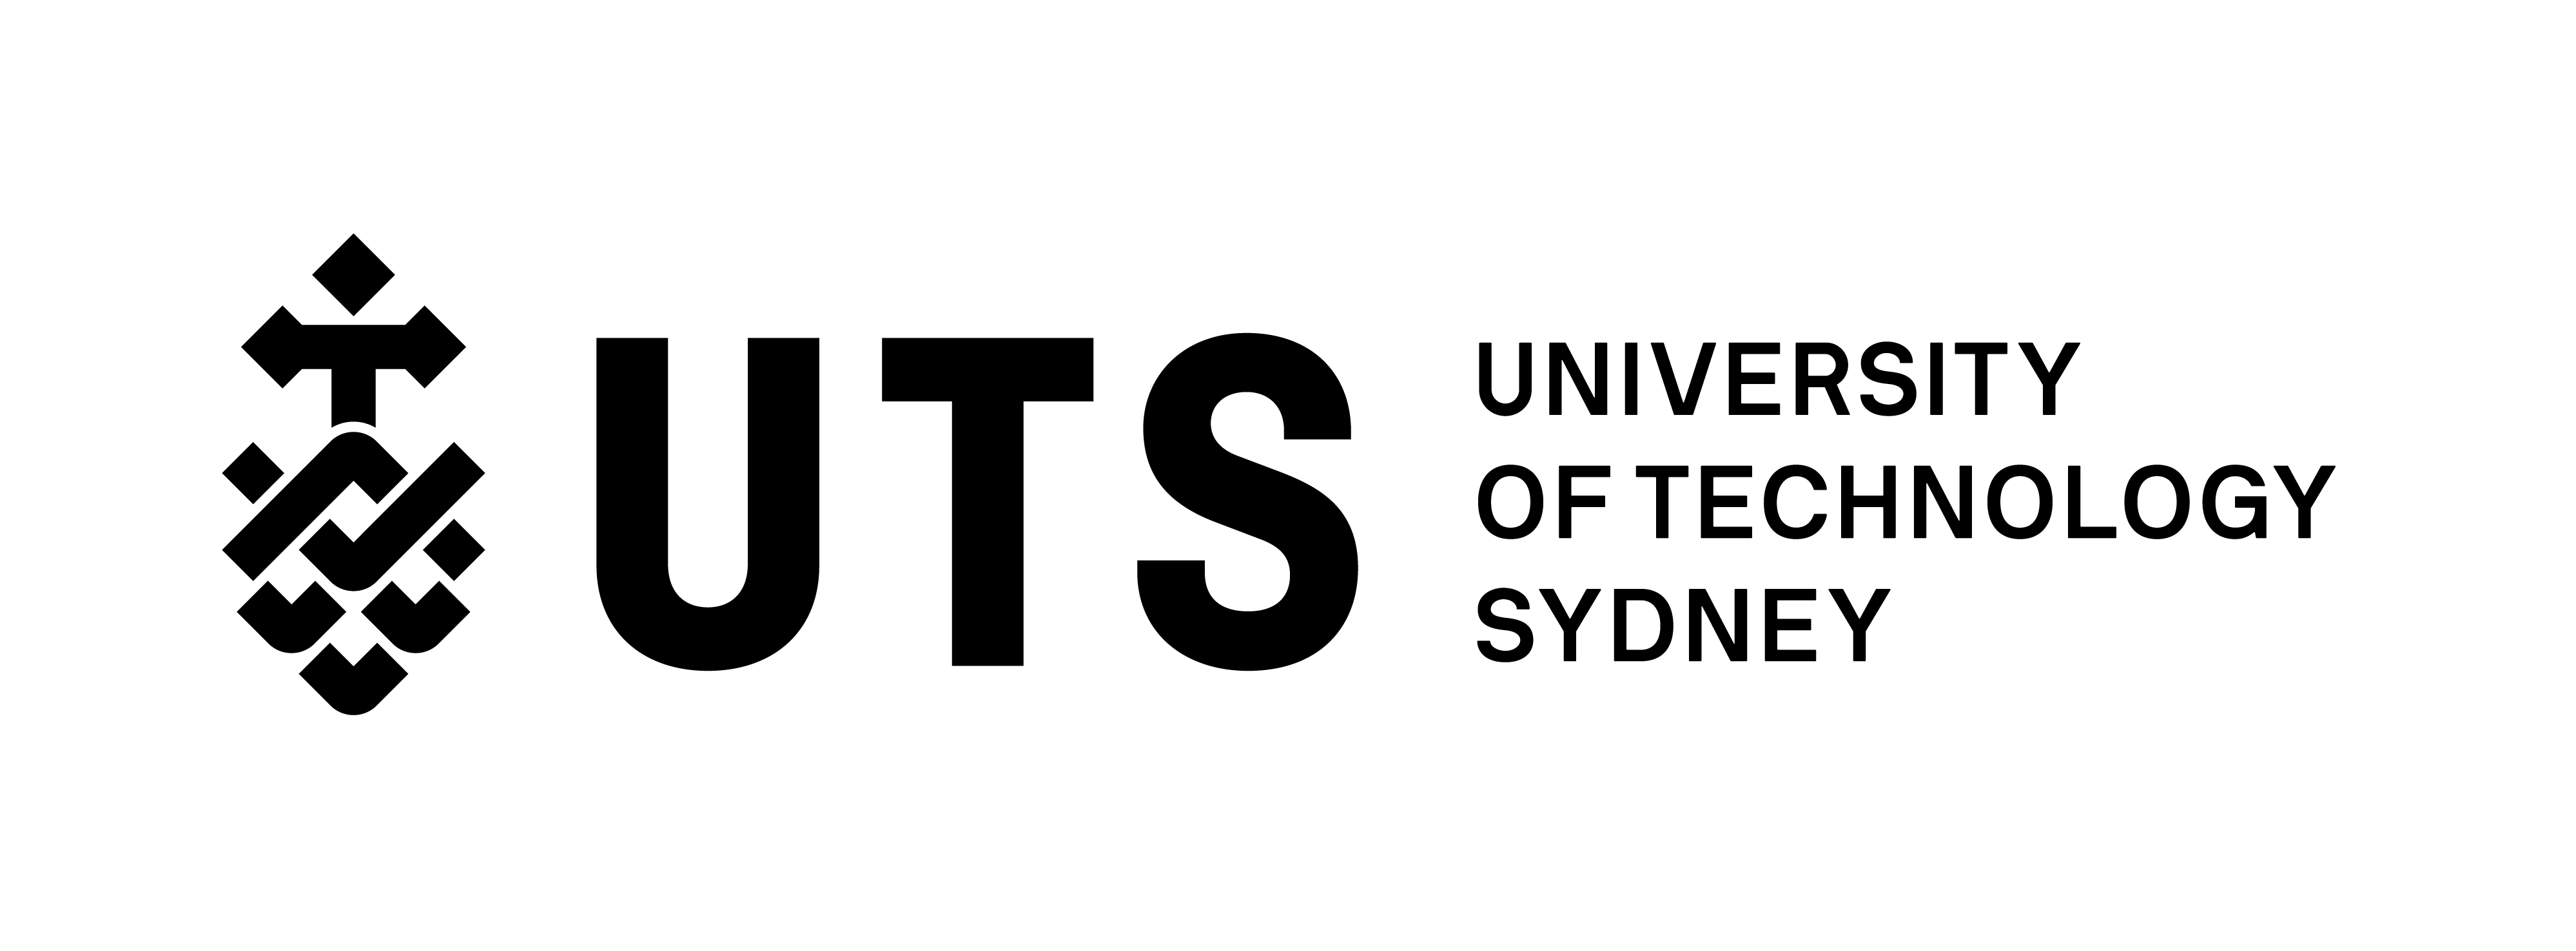 University of Technology Sydney - Bachelor of Arts - Education Studies / Bachelor of Arts - International Studies